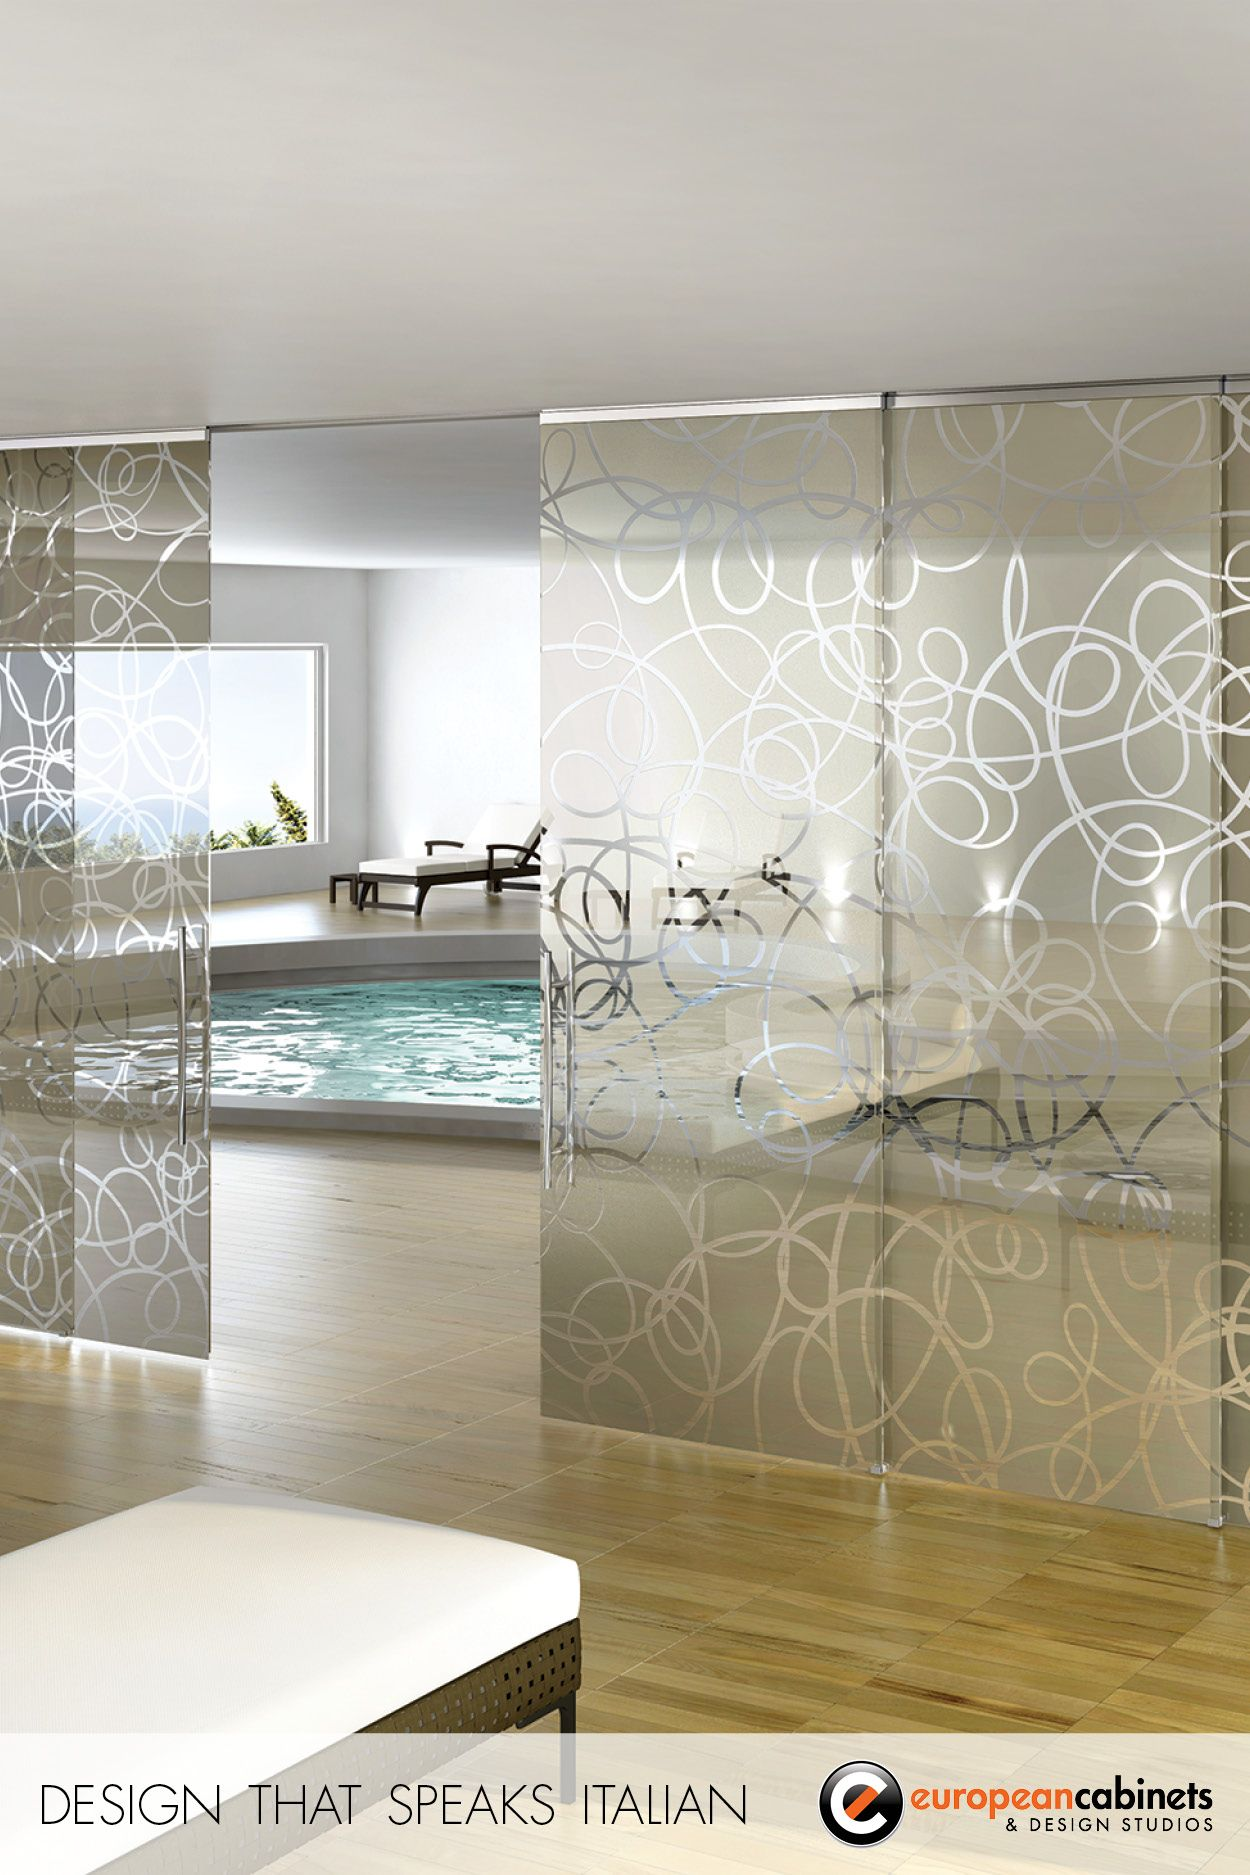 Aura Sliding Glass Door By Casali.